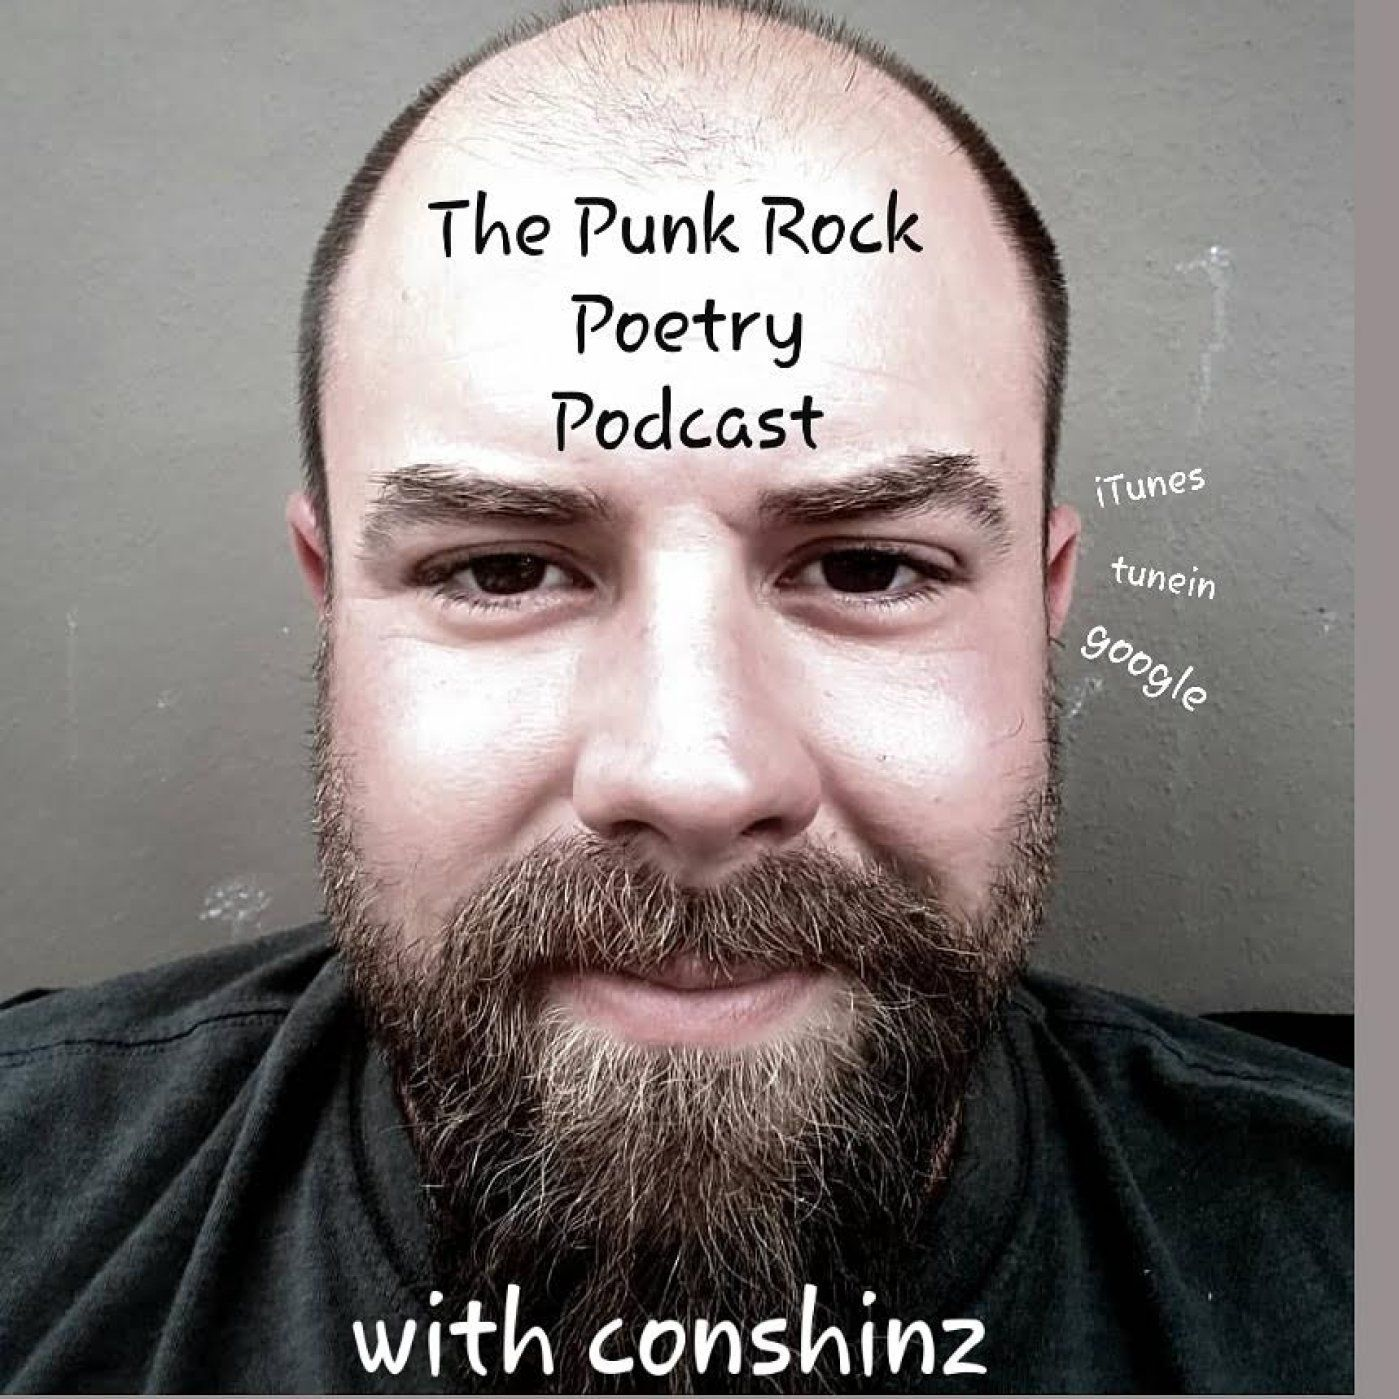 The Punk Rock Poetry Podcast - September 12th 2019